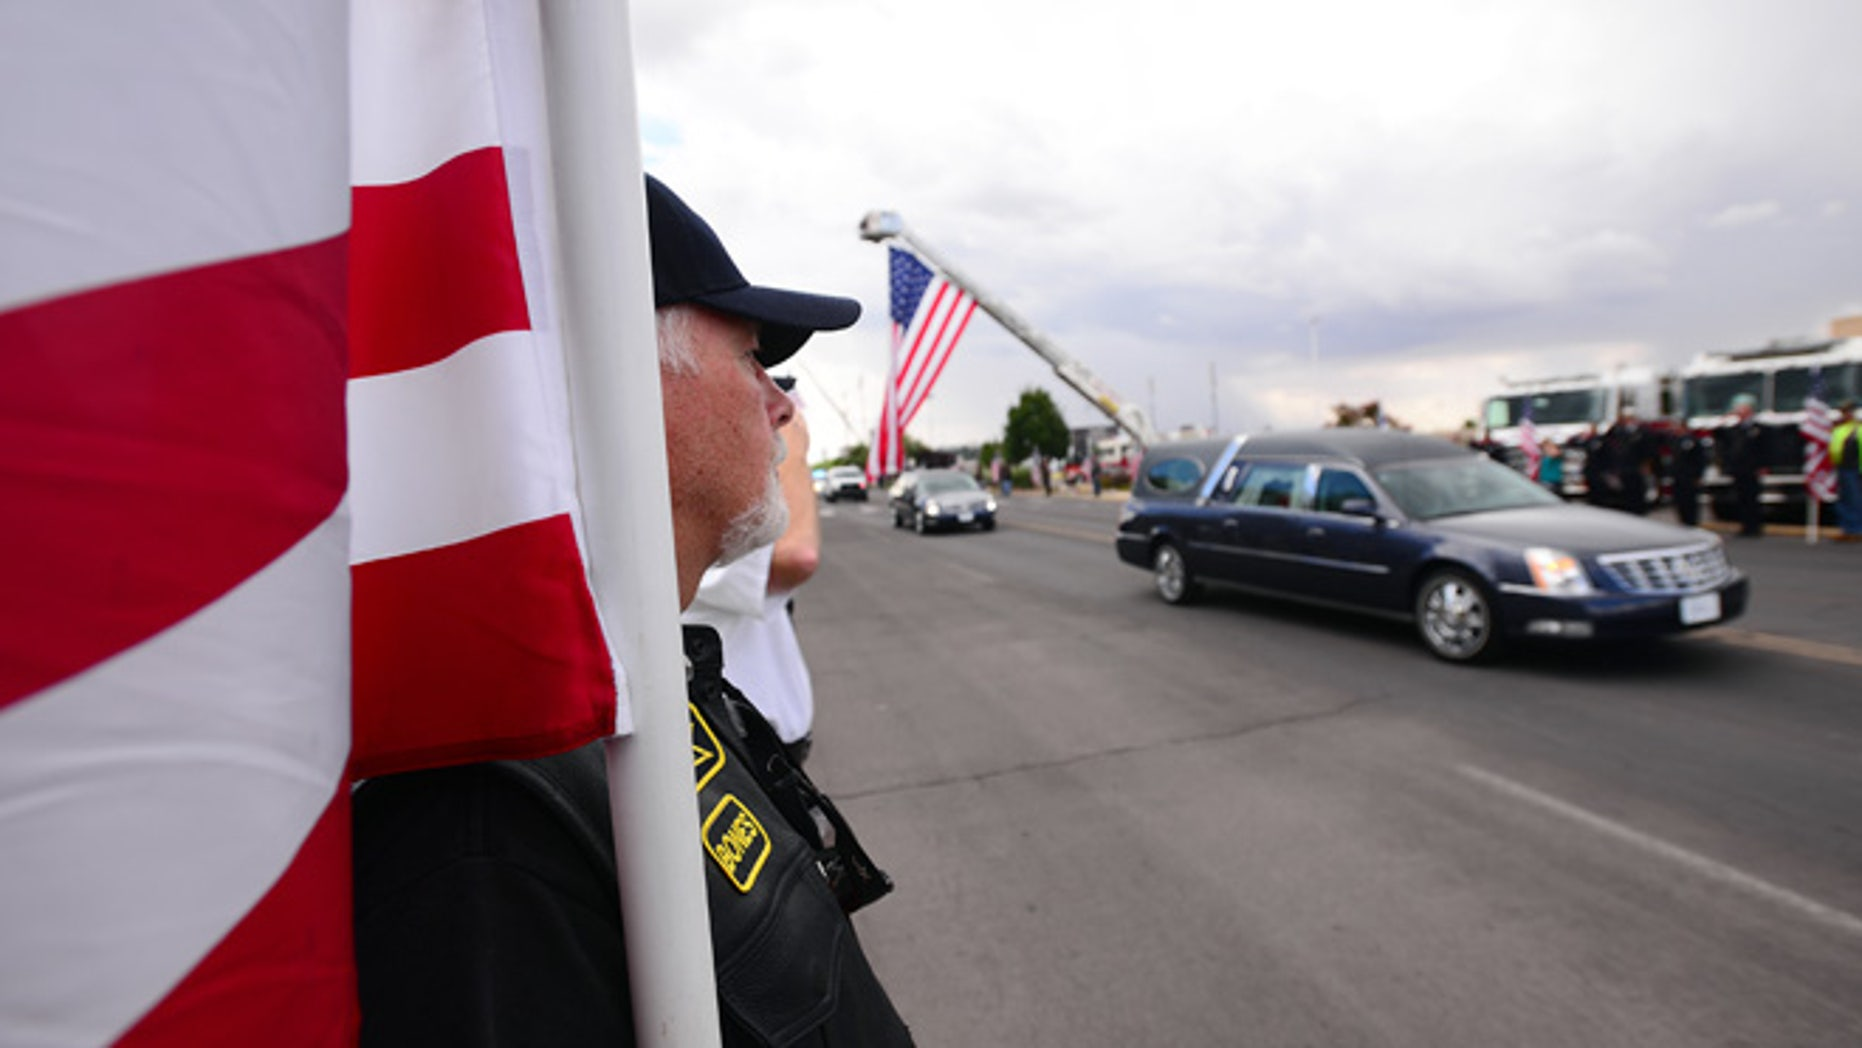 Vietnam War Veteran John Pummell carries a flag while the hearse carrying Hatch Police Officer Jose Chavez approaches the Pan American Center for a public funeral in Las Cruces, N.M., Sunday, Aug. 21, 2016.